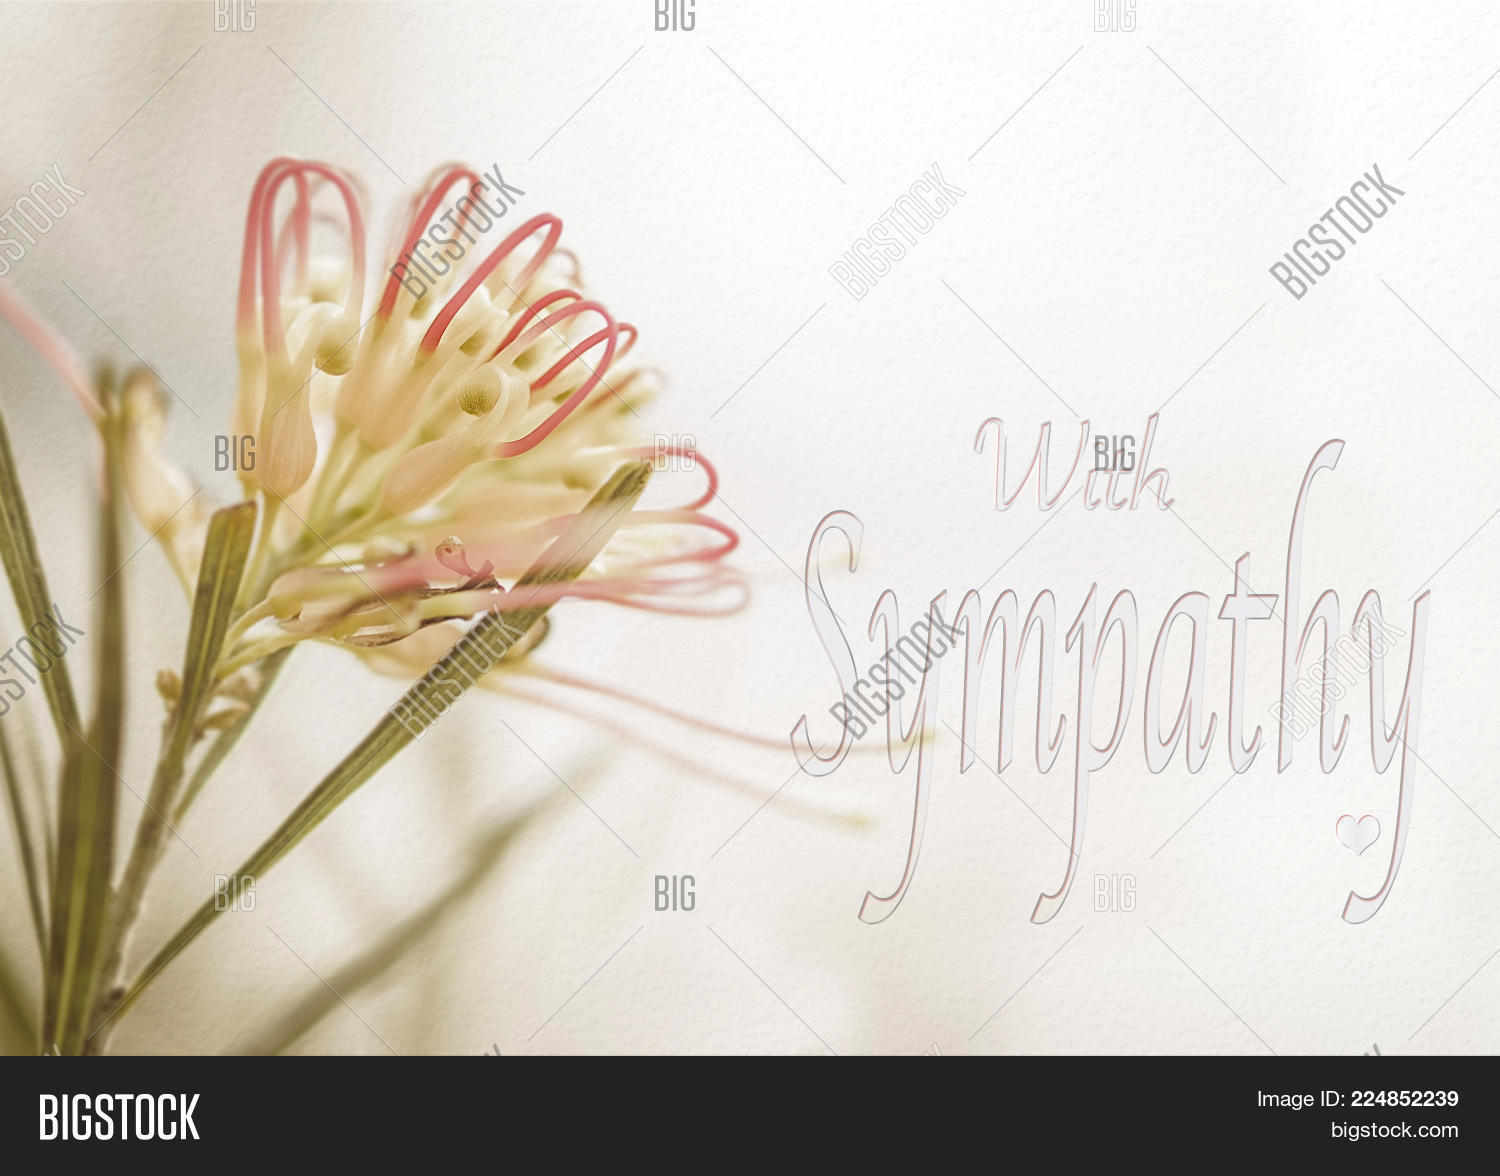 Sympathy card australian grevillea image photo bigstock sympathy card with australian grevillea flower in soft pastel colors and text for sorrow funeral kristyandbryce Images